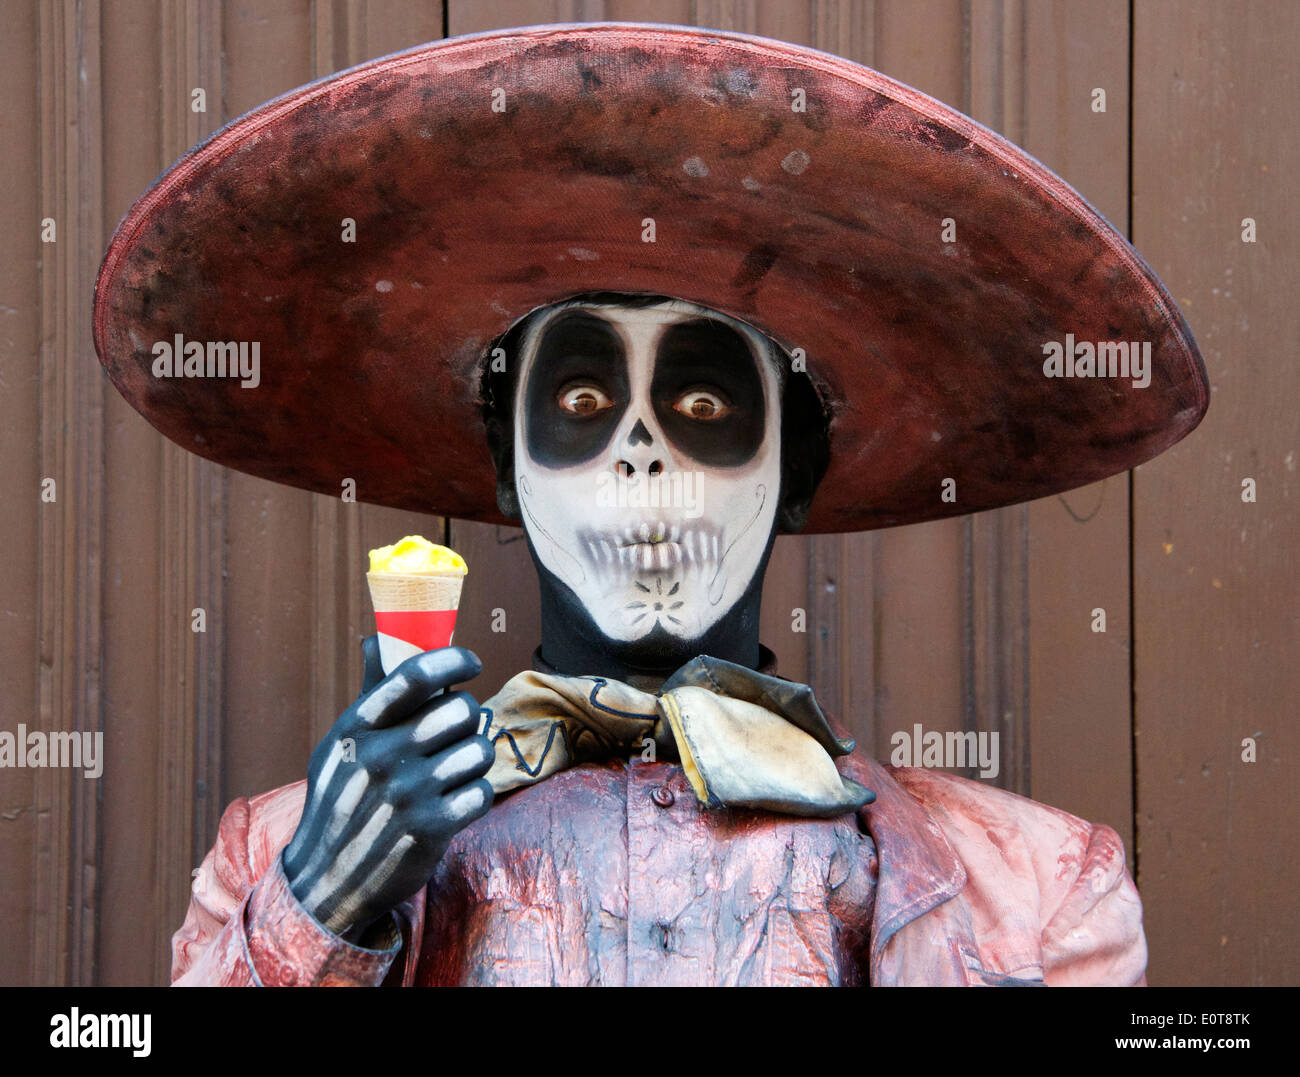 Close-up street mime artist dressed as Day of the Dead skeleton Guanajuato Mexico - Stock Image